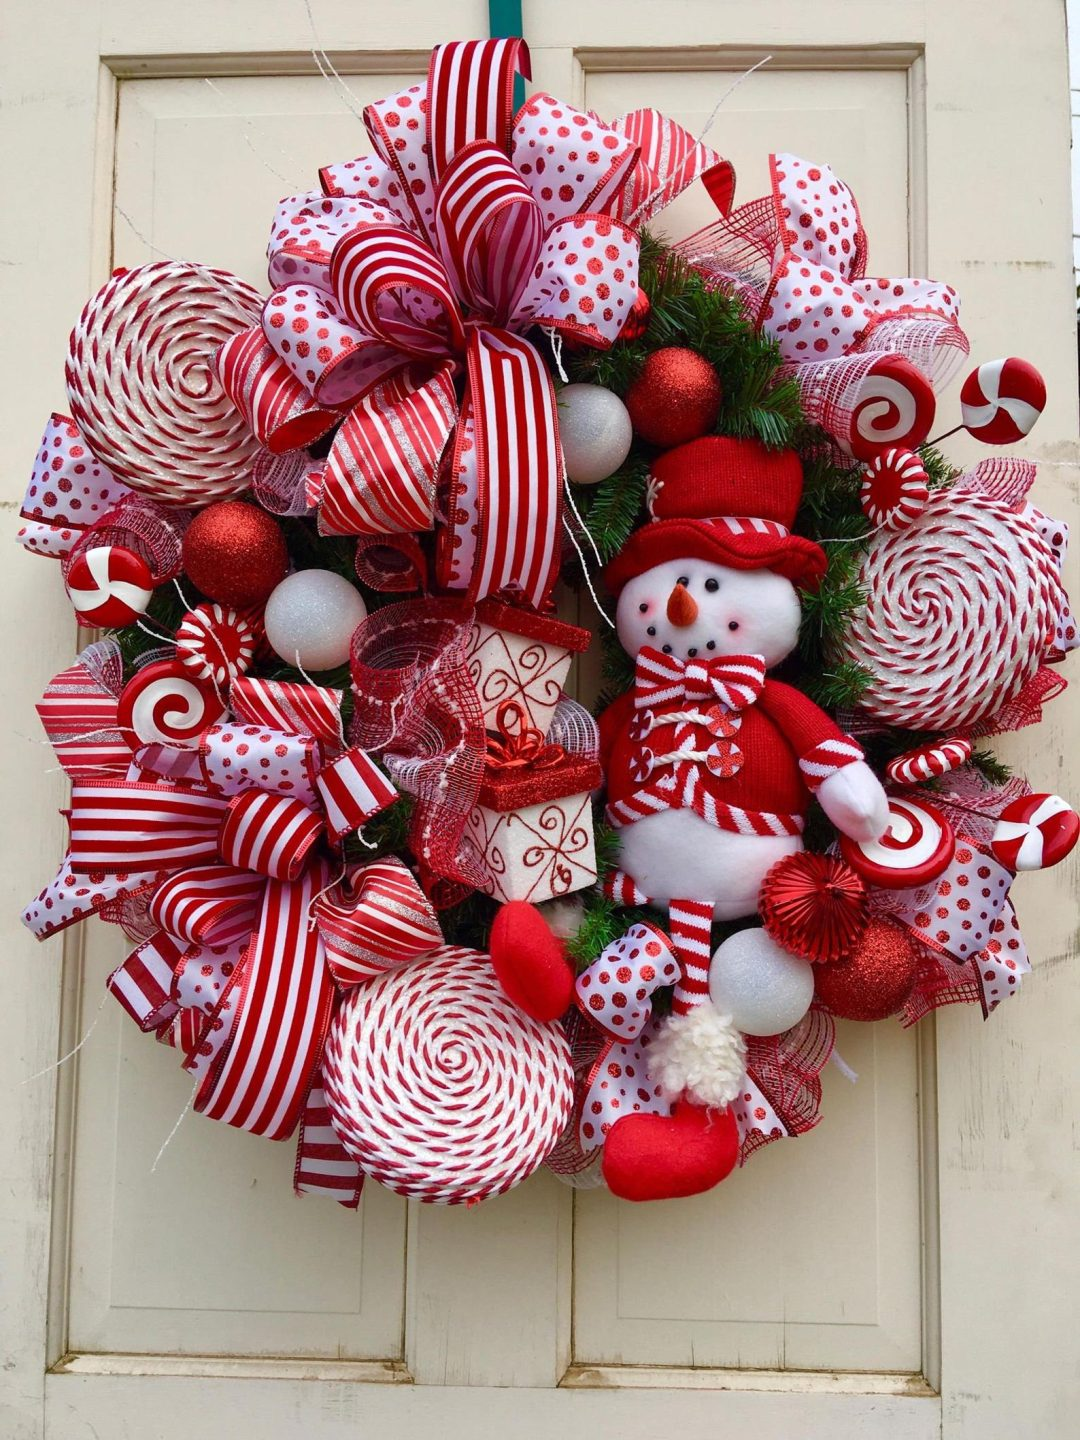 Red peppermint wreath with snowman - holiday wreath for Christmas